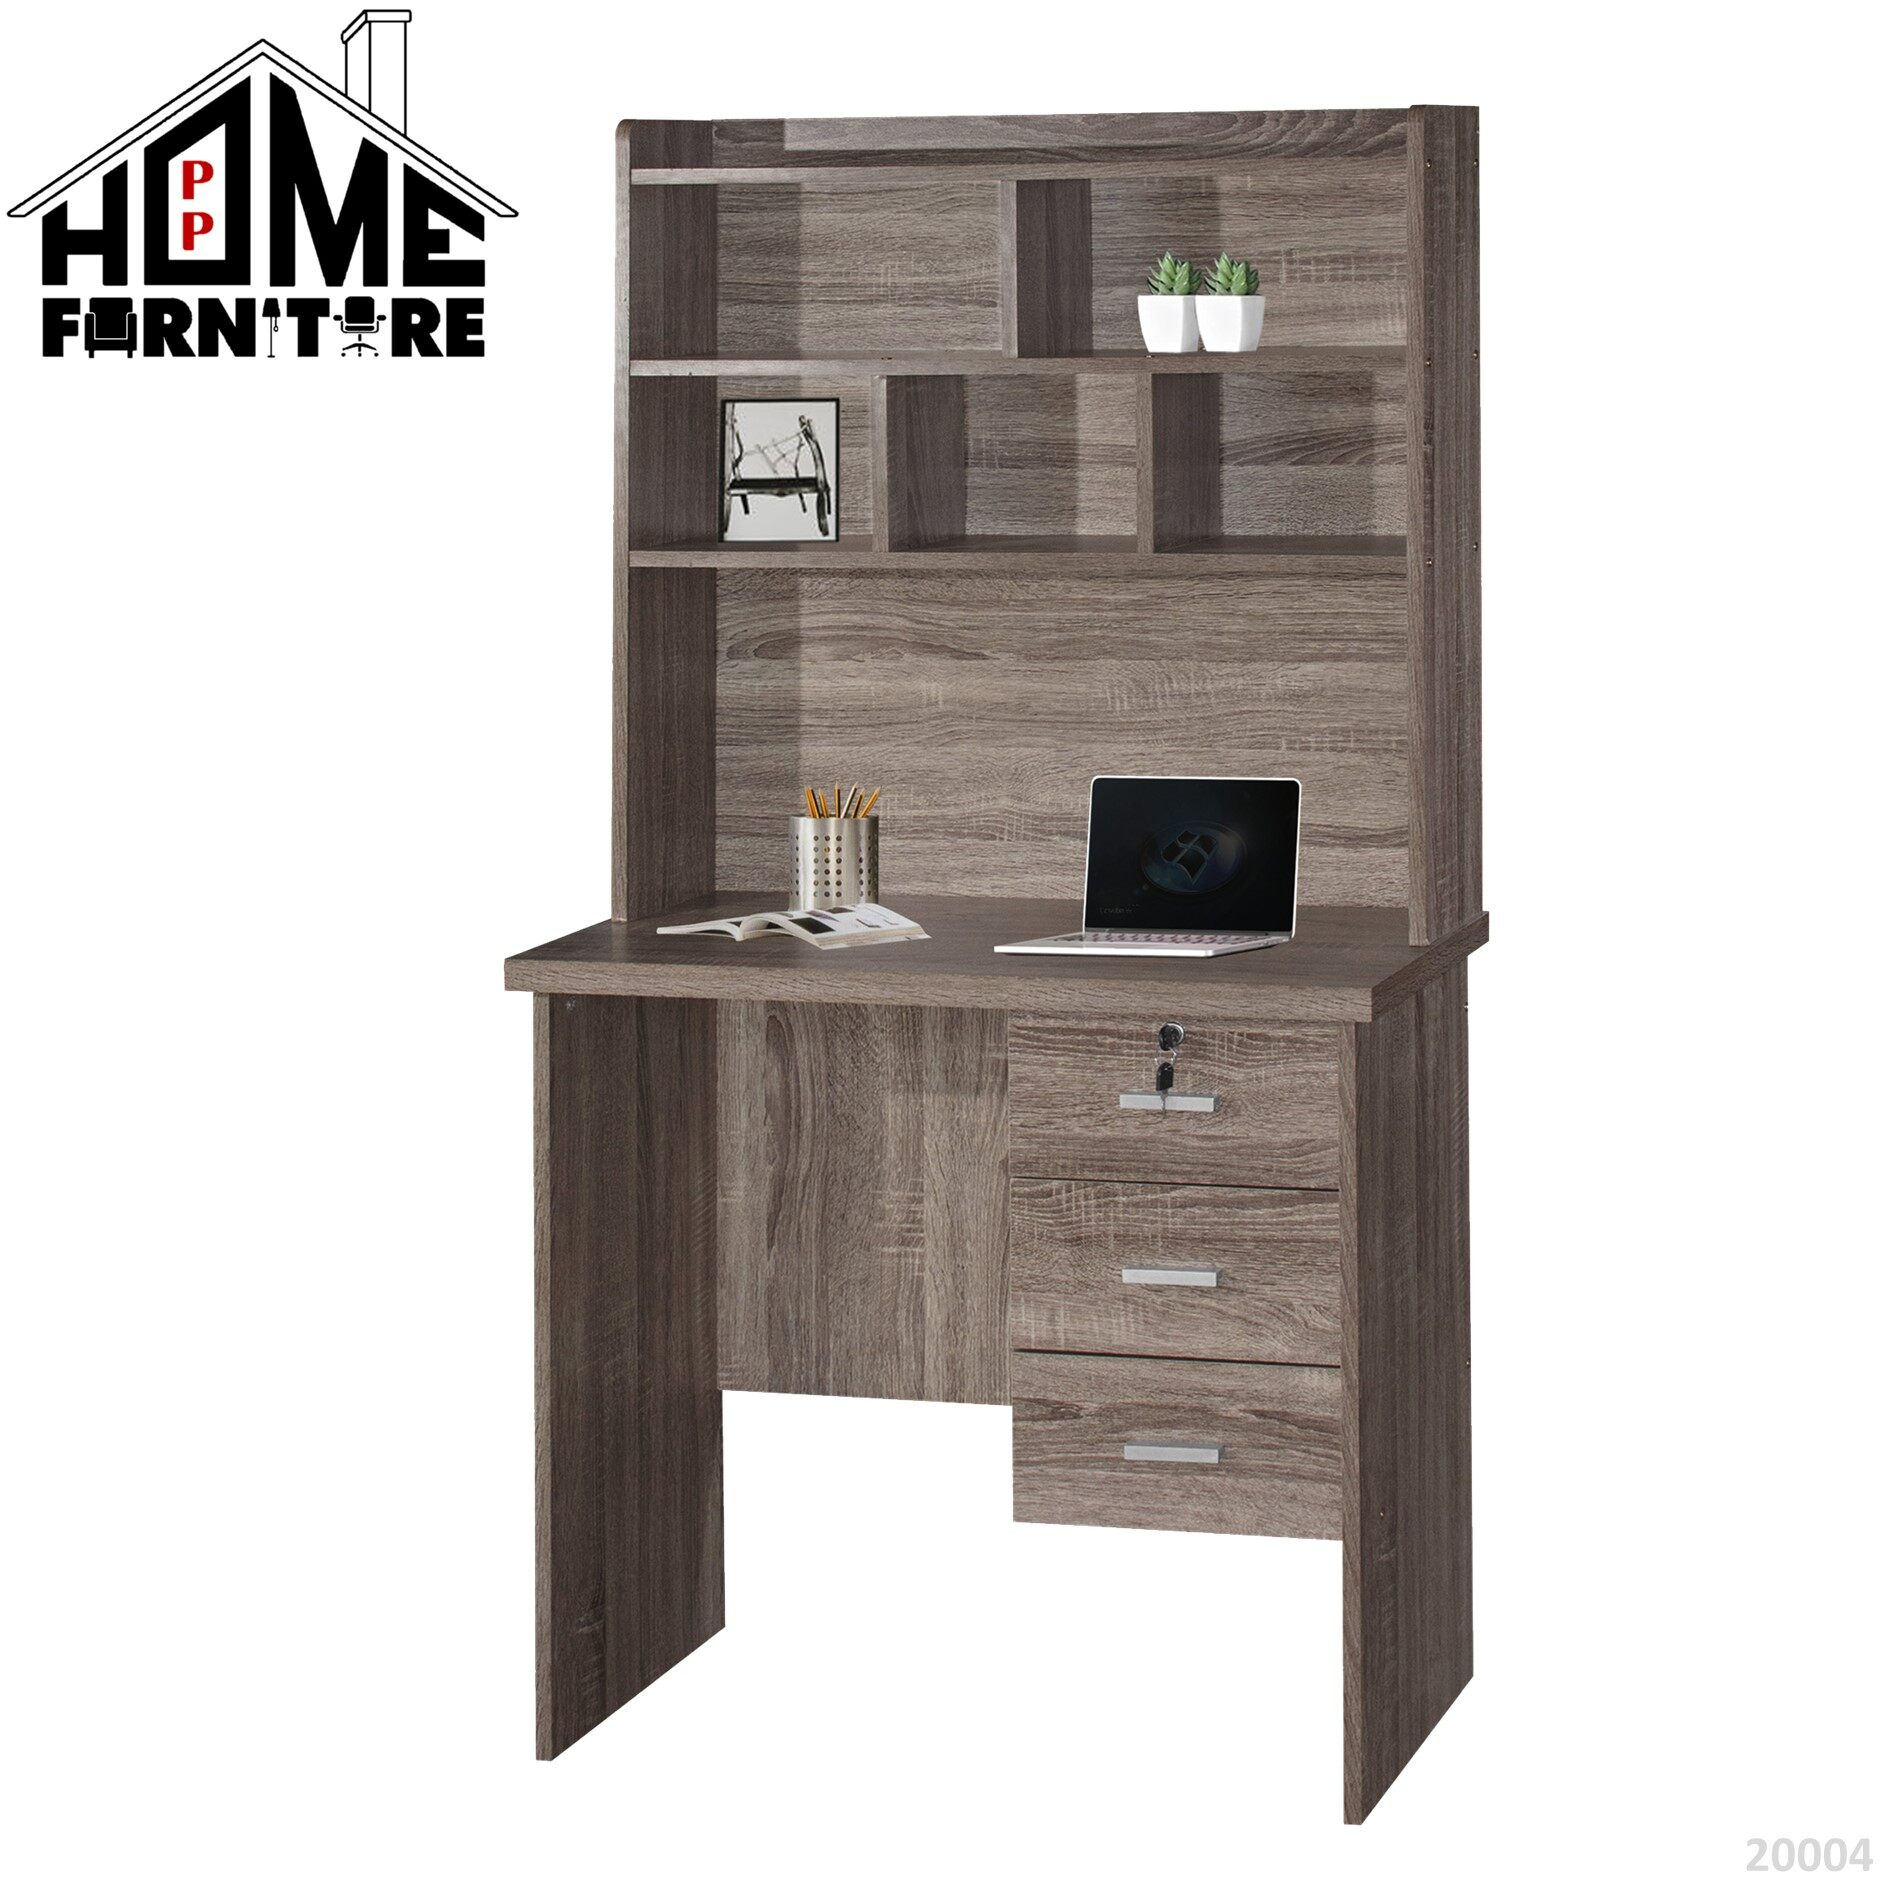 PP HOME Study Table with shelf & locker drawer/Writing table/Working table /PC table/ Student table/Home office table/Multipurpose table/Desk/Computer table/Destop/laptop/Meja belajar/Meja tulis/Meja kerja/komputer电脑桌/书桌/工作桌/读书桌/办公桌20004